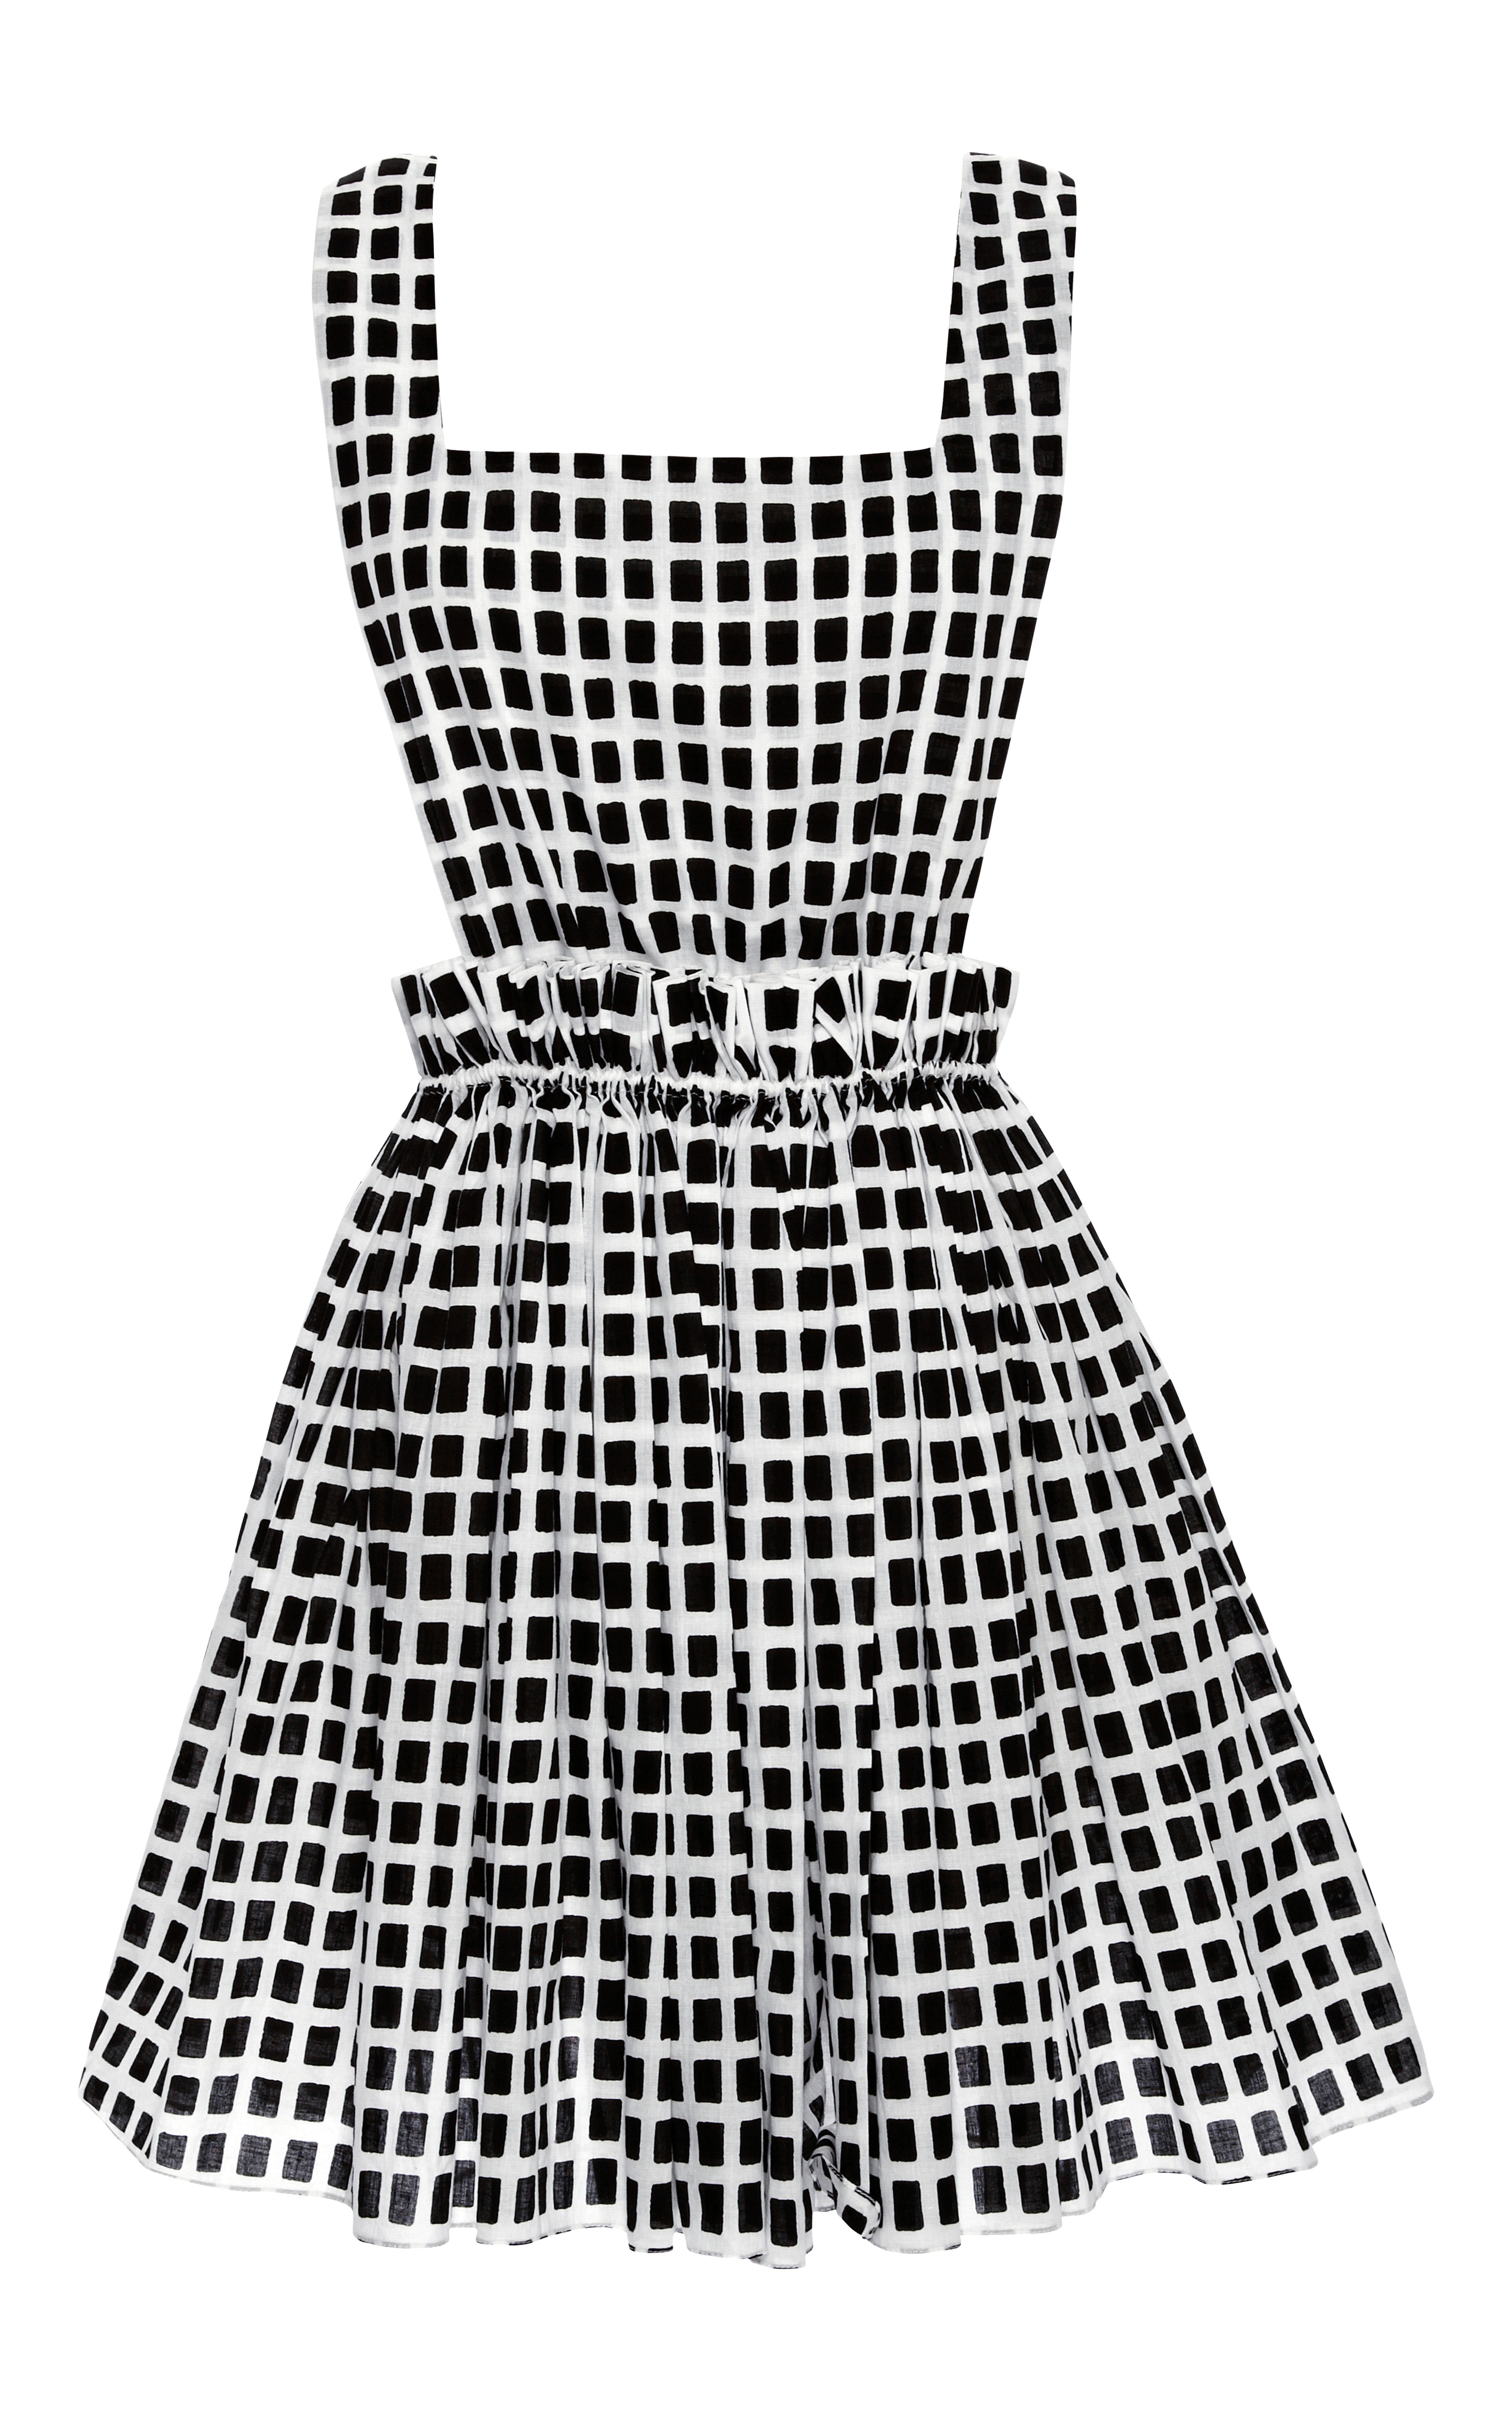 3c80c3297f1 Kalmanovich Black and White Checkered Dress with Cinched Waist in ...